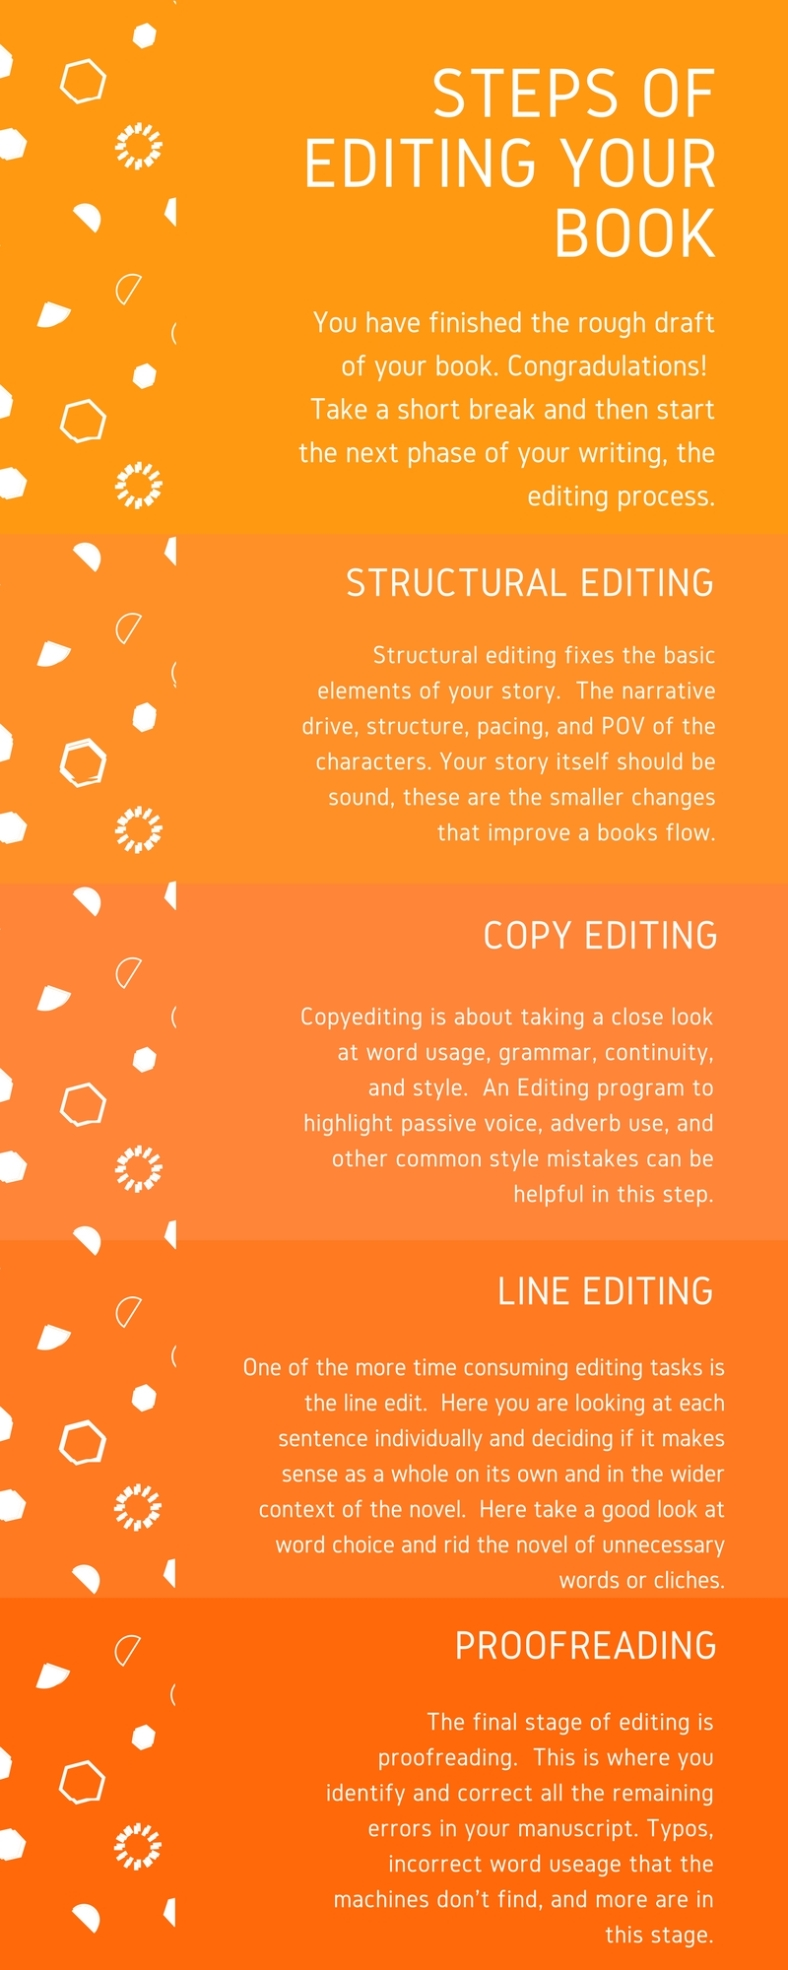 Steps of Editing Your Book